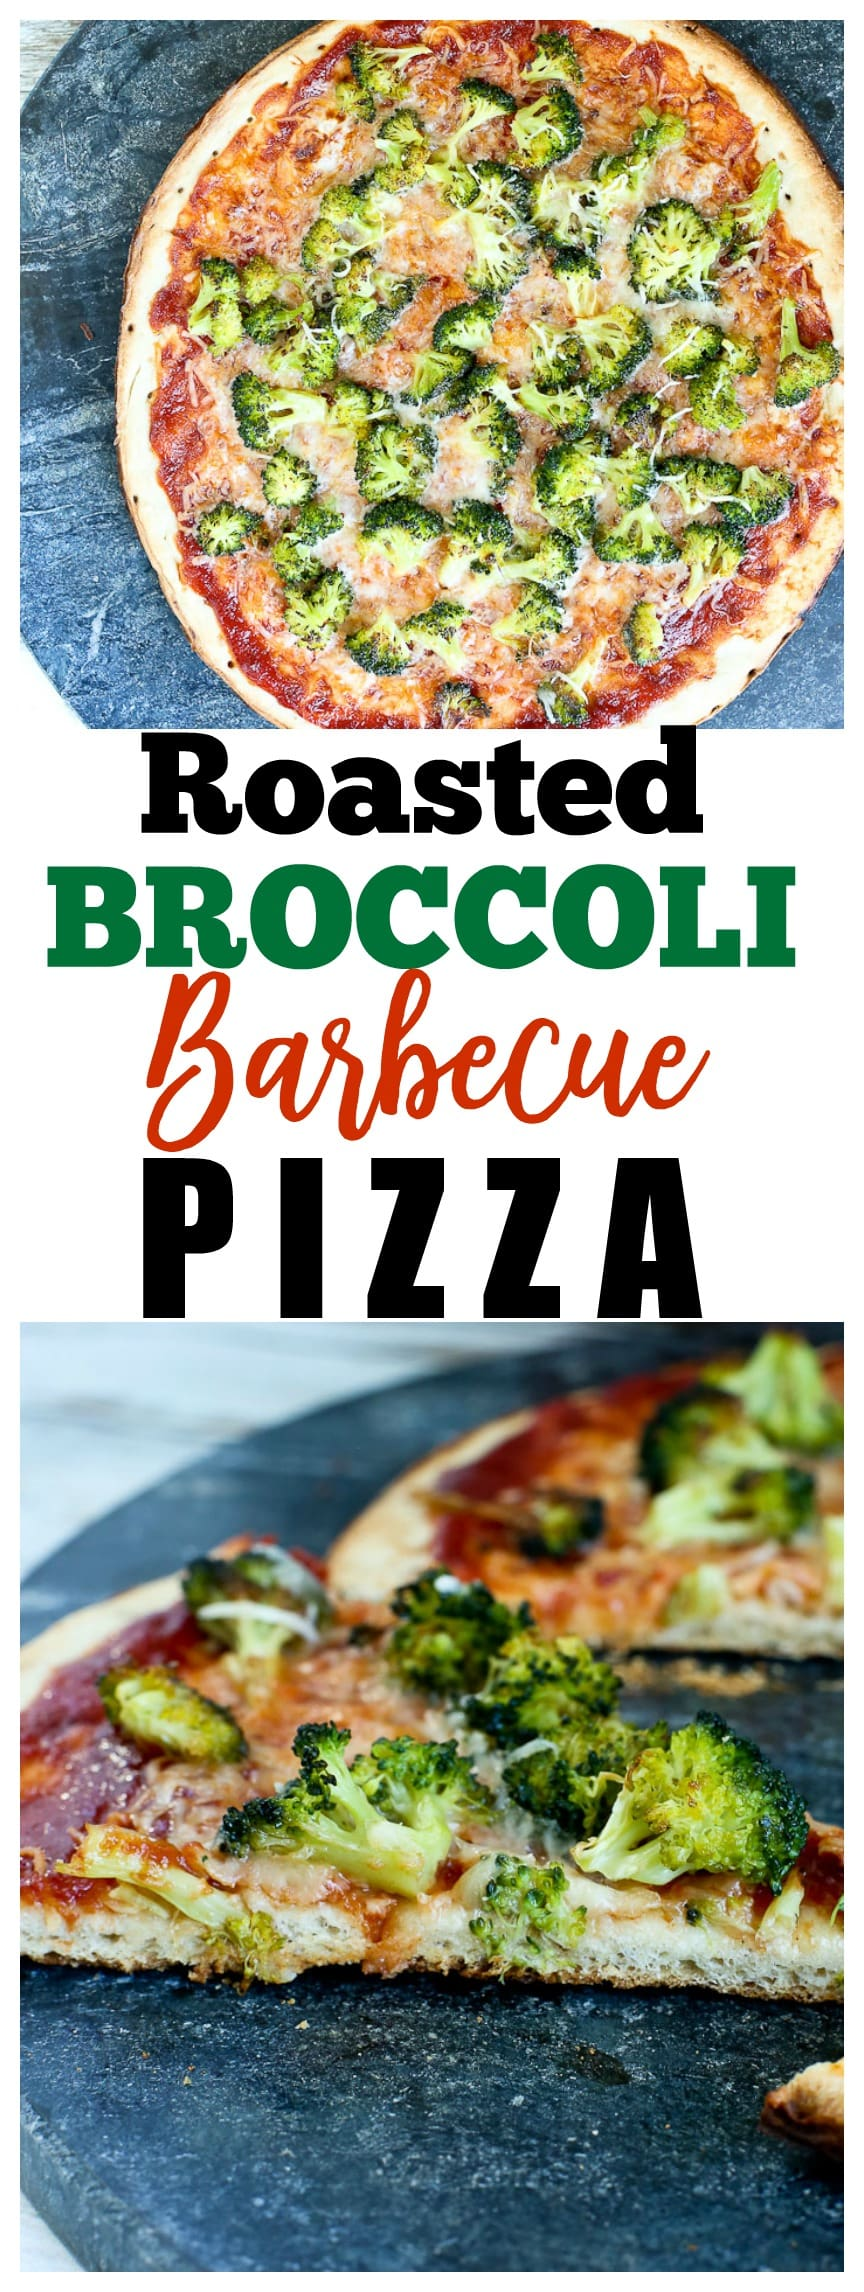 25 minute dinner recipe! This Roasted Broccoli Barbecue Pizza Recipe is a winner. Healthy vegetarian weeknight dinner idea! #pizza #recipe #healthy #vegetarian #dinner